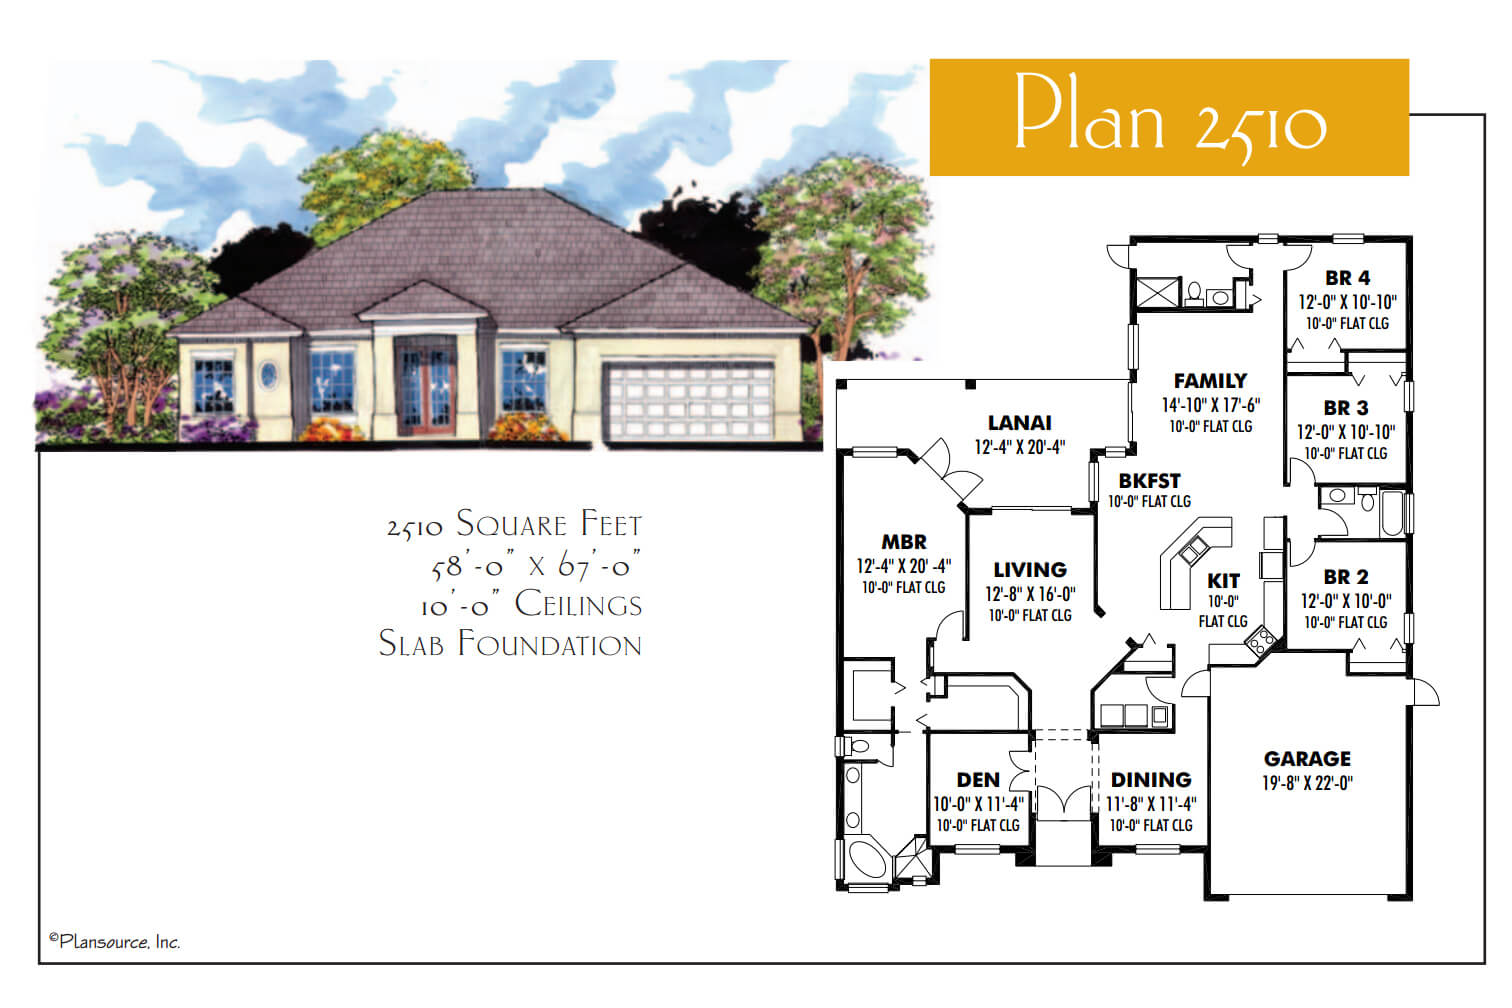 Floor Plans,2,501 SQ FT TO 3,000 SQ FT,1050